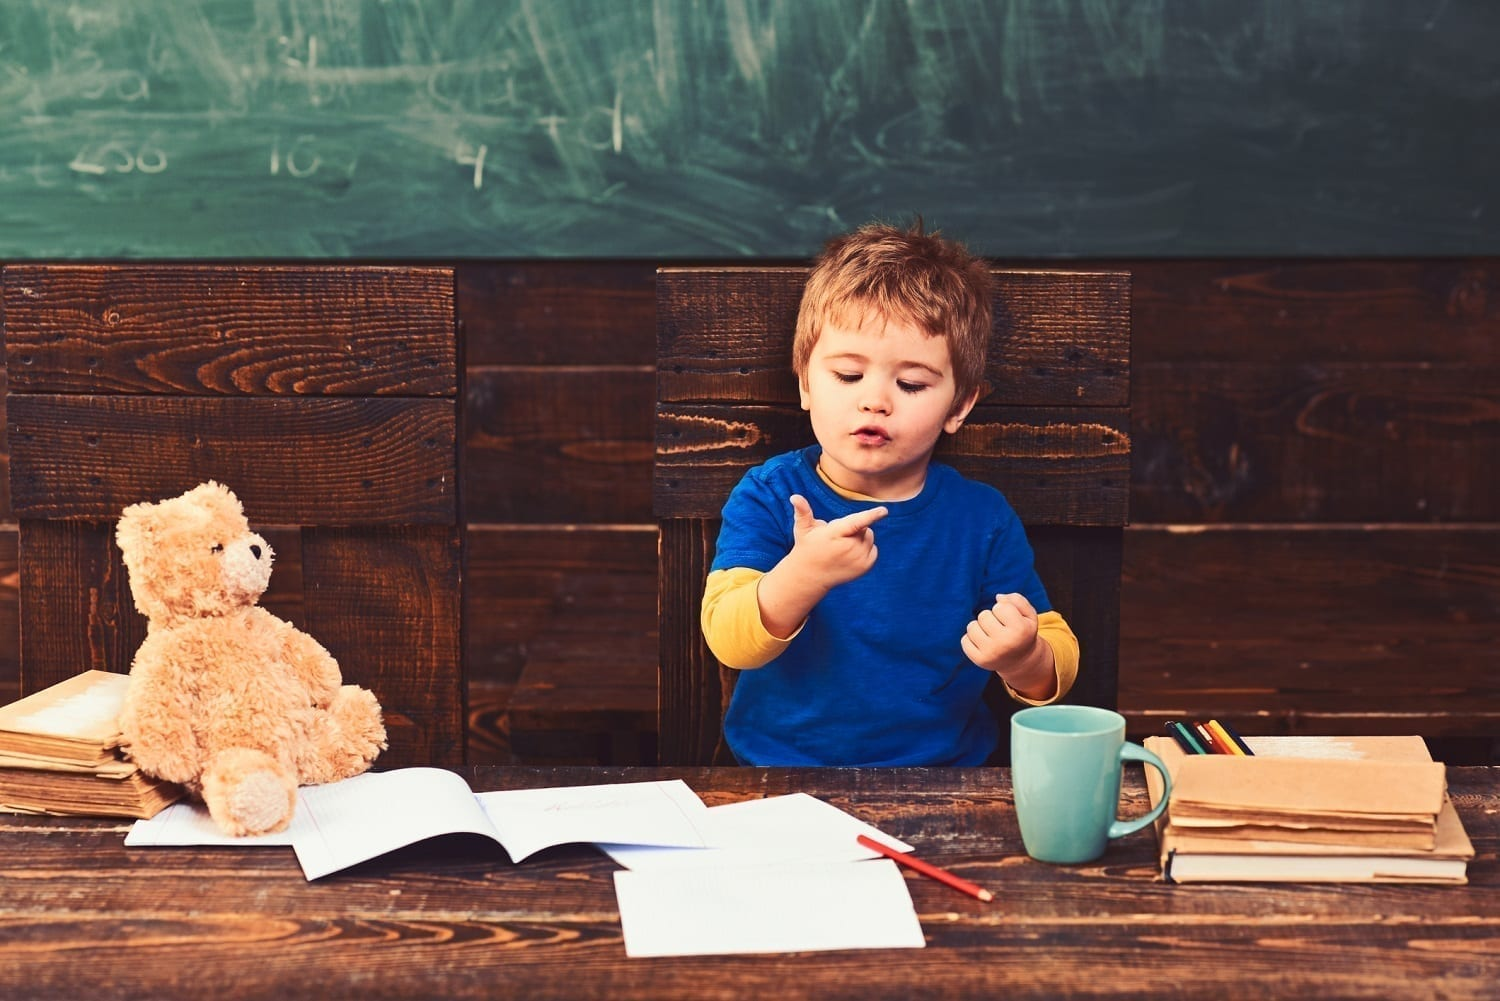 Small child counting on fingers surrounded by college-style setting and Teddy Bear: ID 139764622 © Volodymyr Tverdokhlib | Dreamstime.com